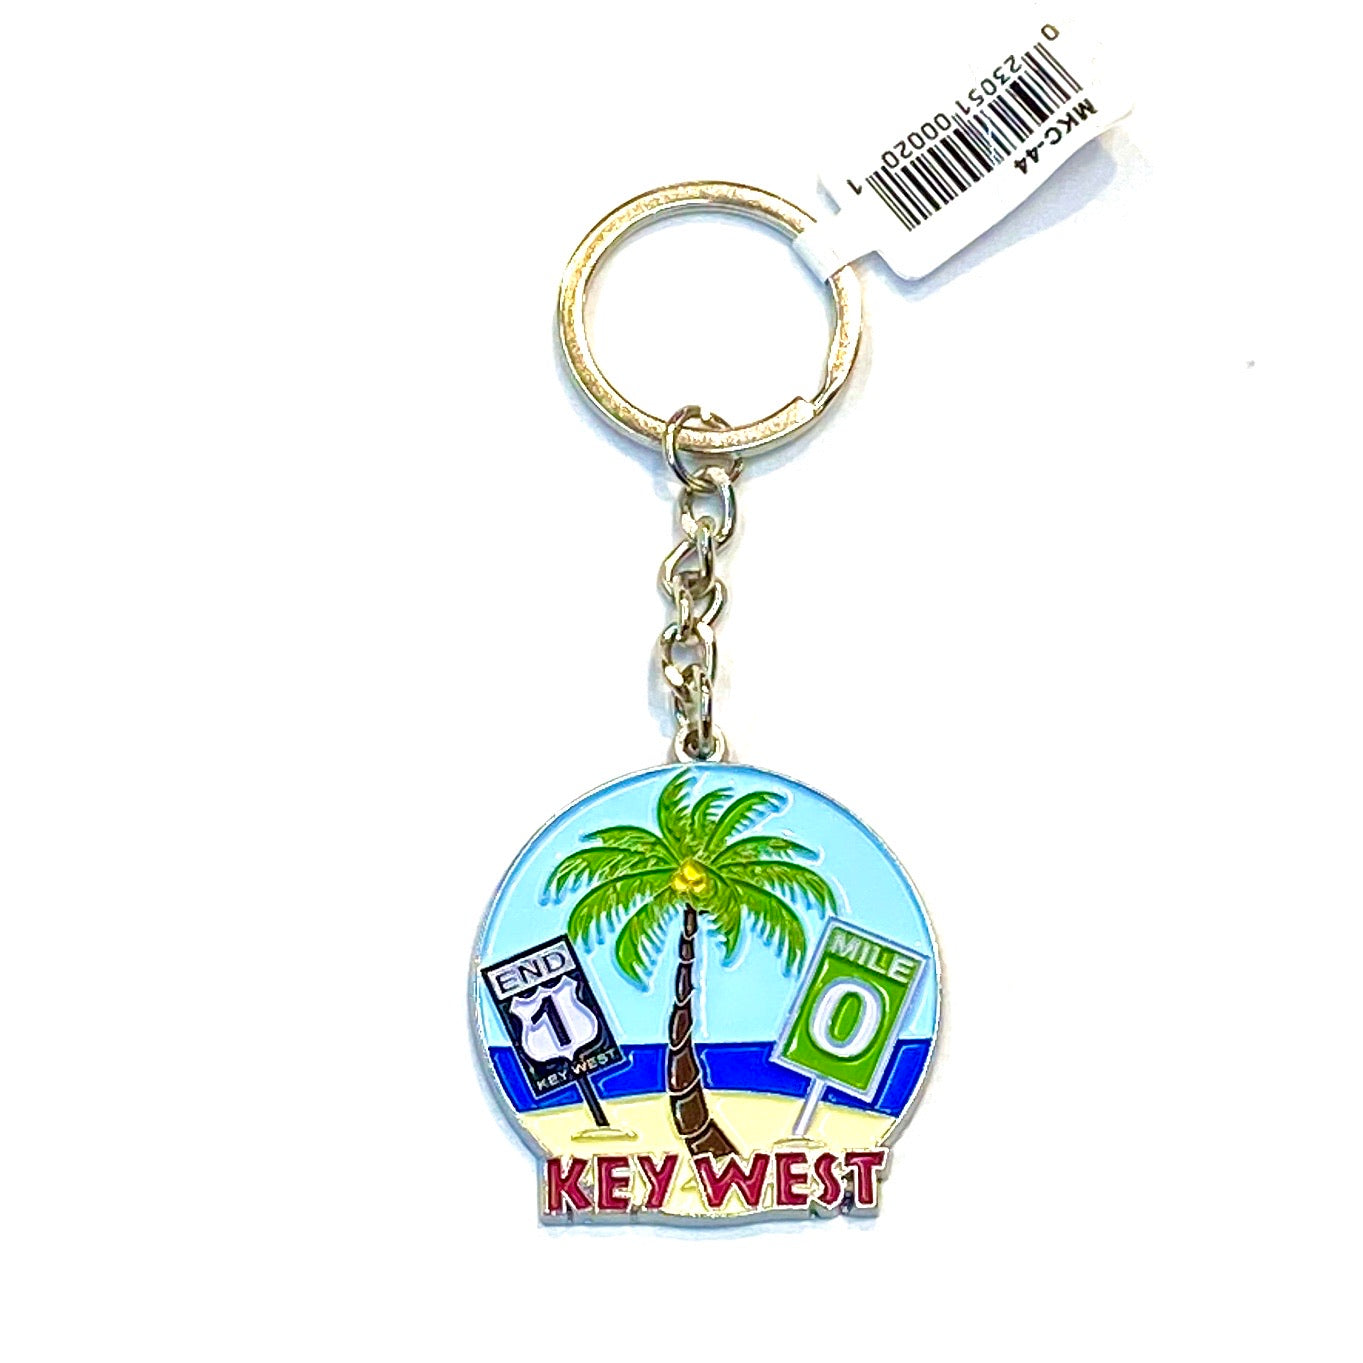 Key West Metal Key Chain - Key West Walking Tour